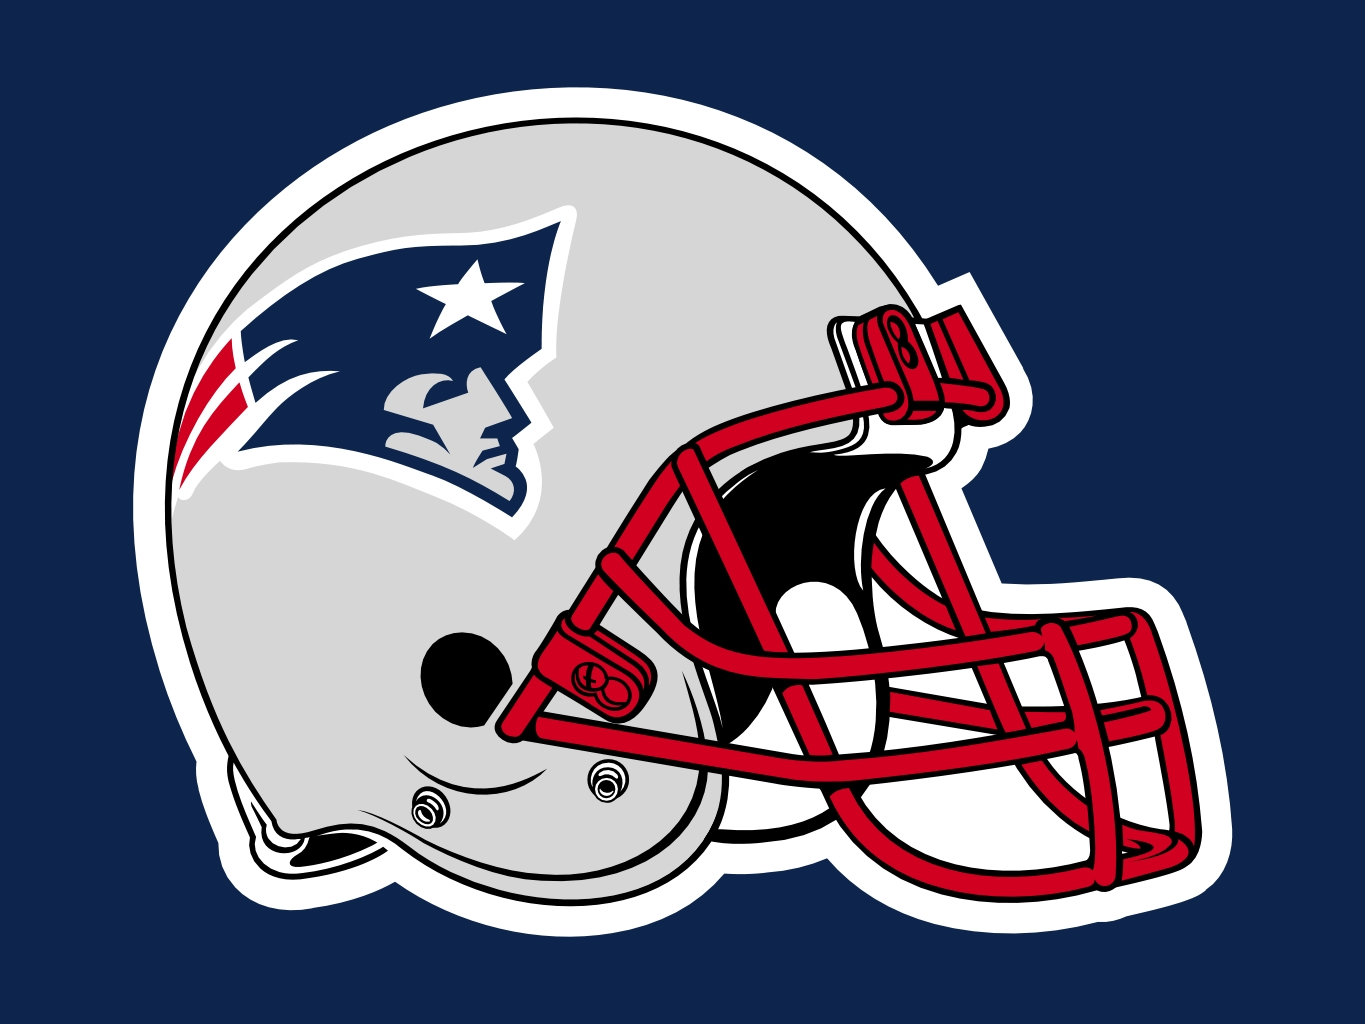 New england patriots wallpaper 5519 1365x1024 px hdwallsource new england patriots wallpaper 5519 voltagebd Gallery